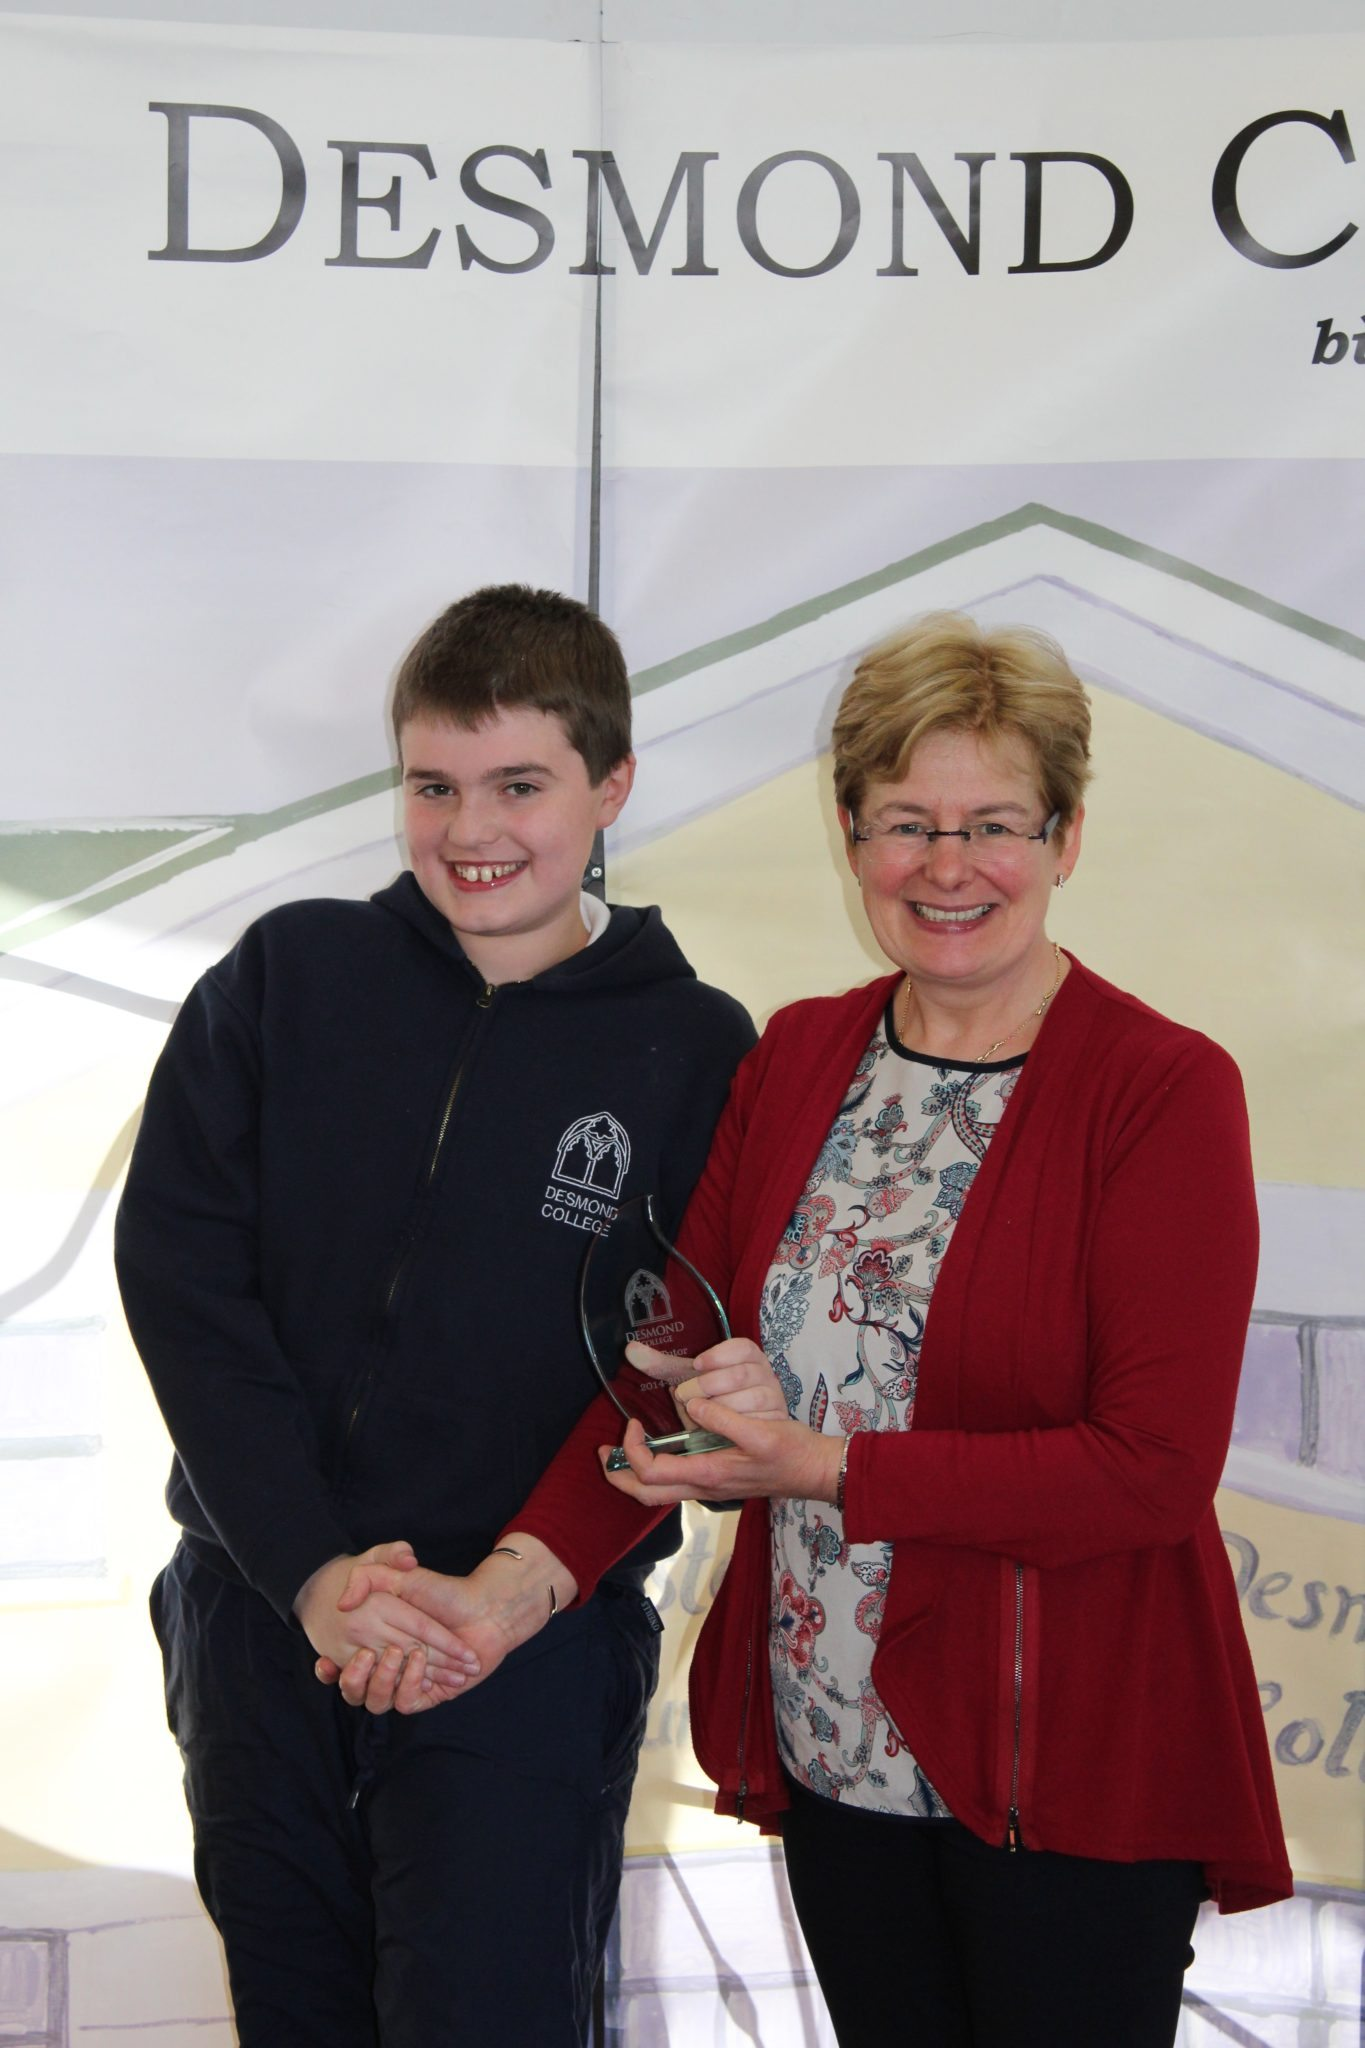 Desmond College Student Awards: May 2015: TUTOR AWARDS 1st Year : Ms Hannon with Alan Wallace